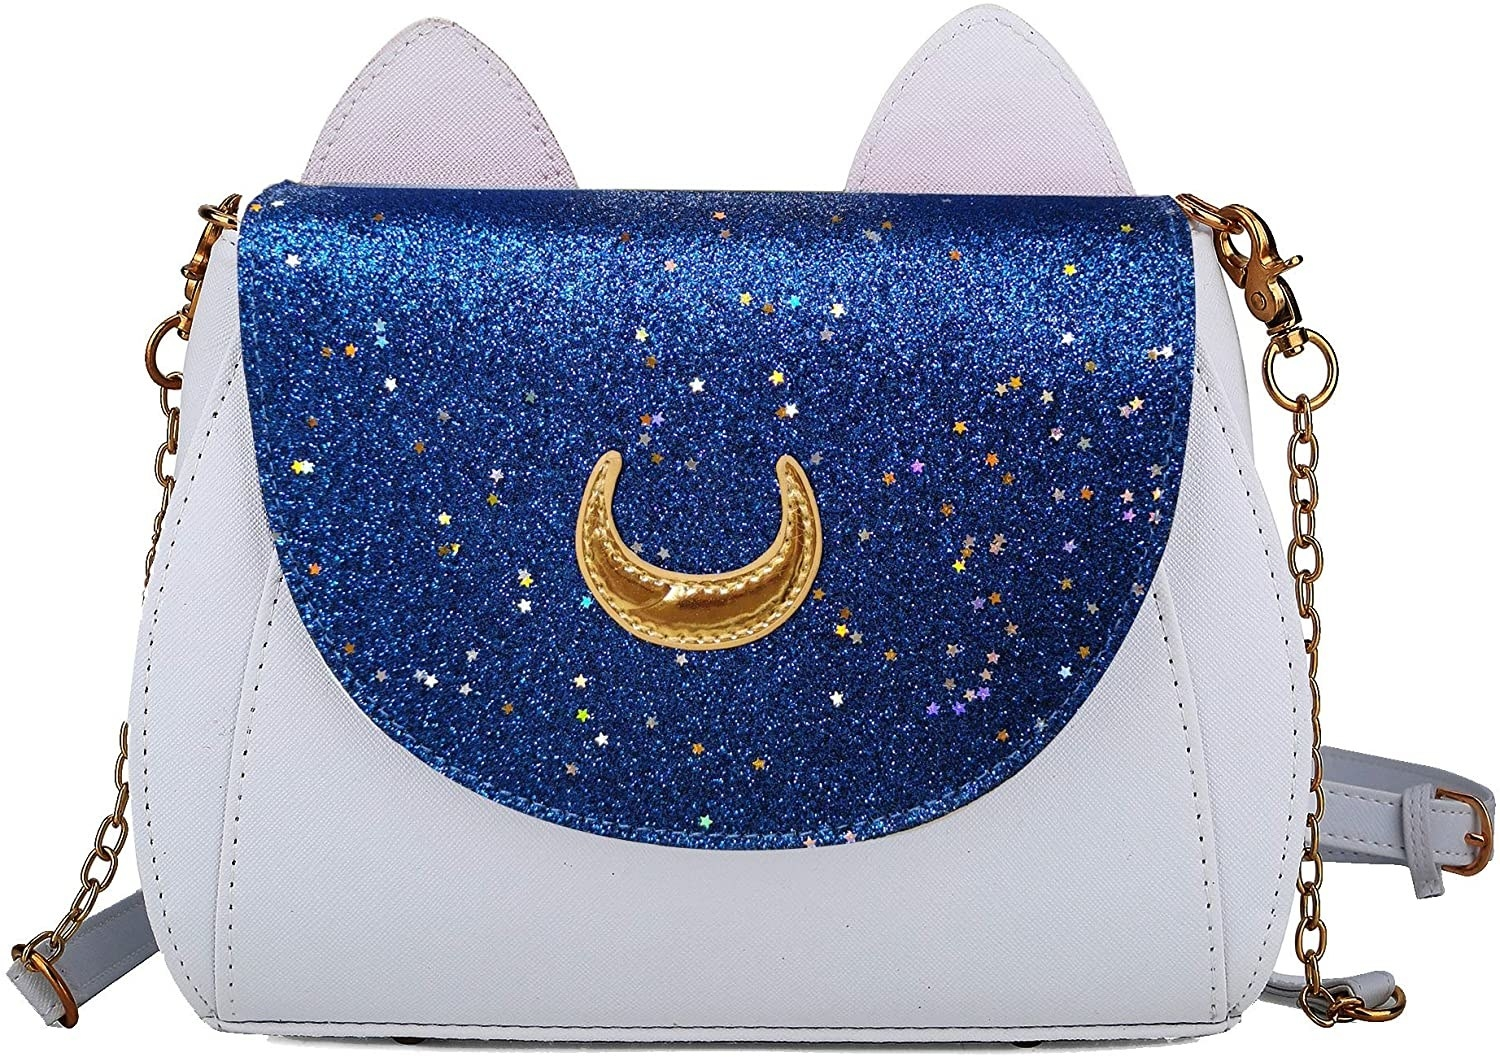 the white and blue Sailor Moon purse